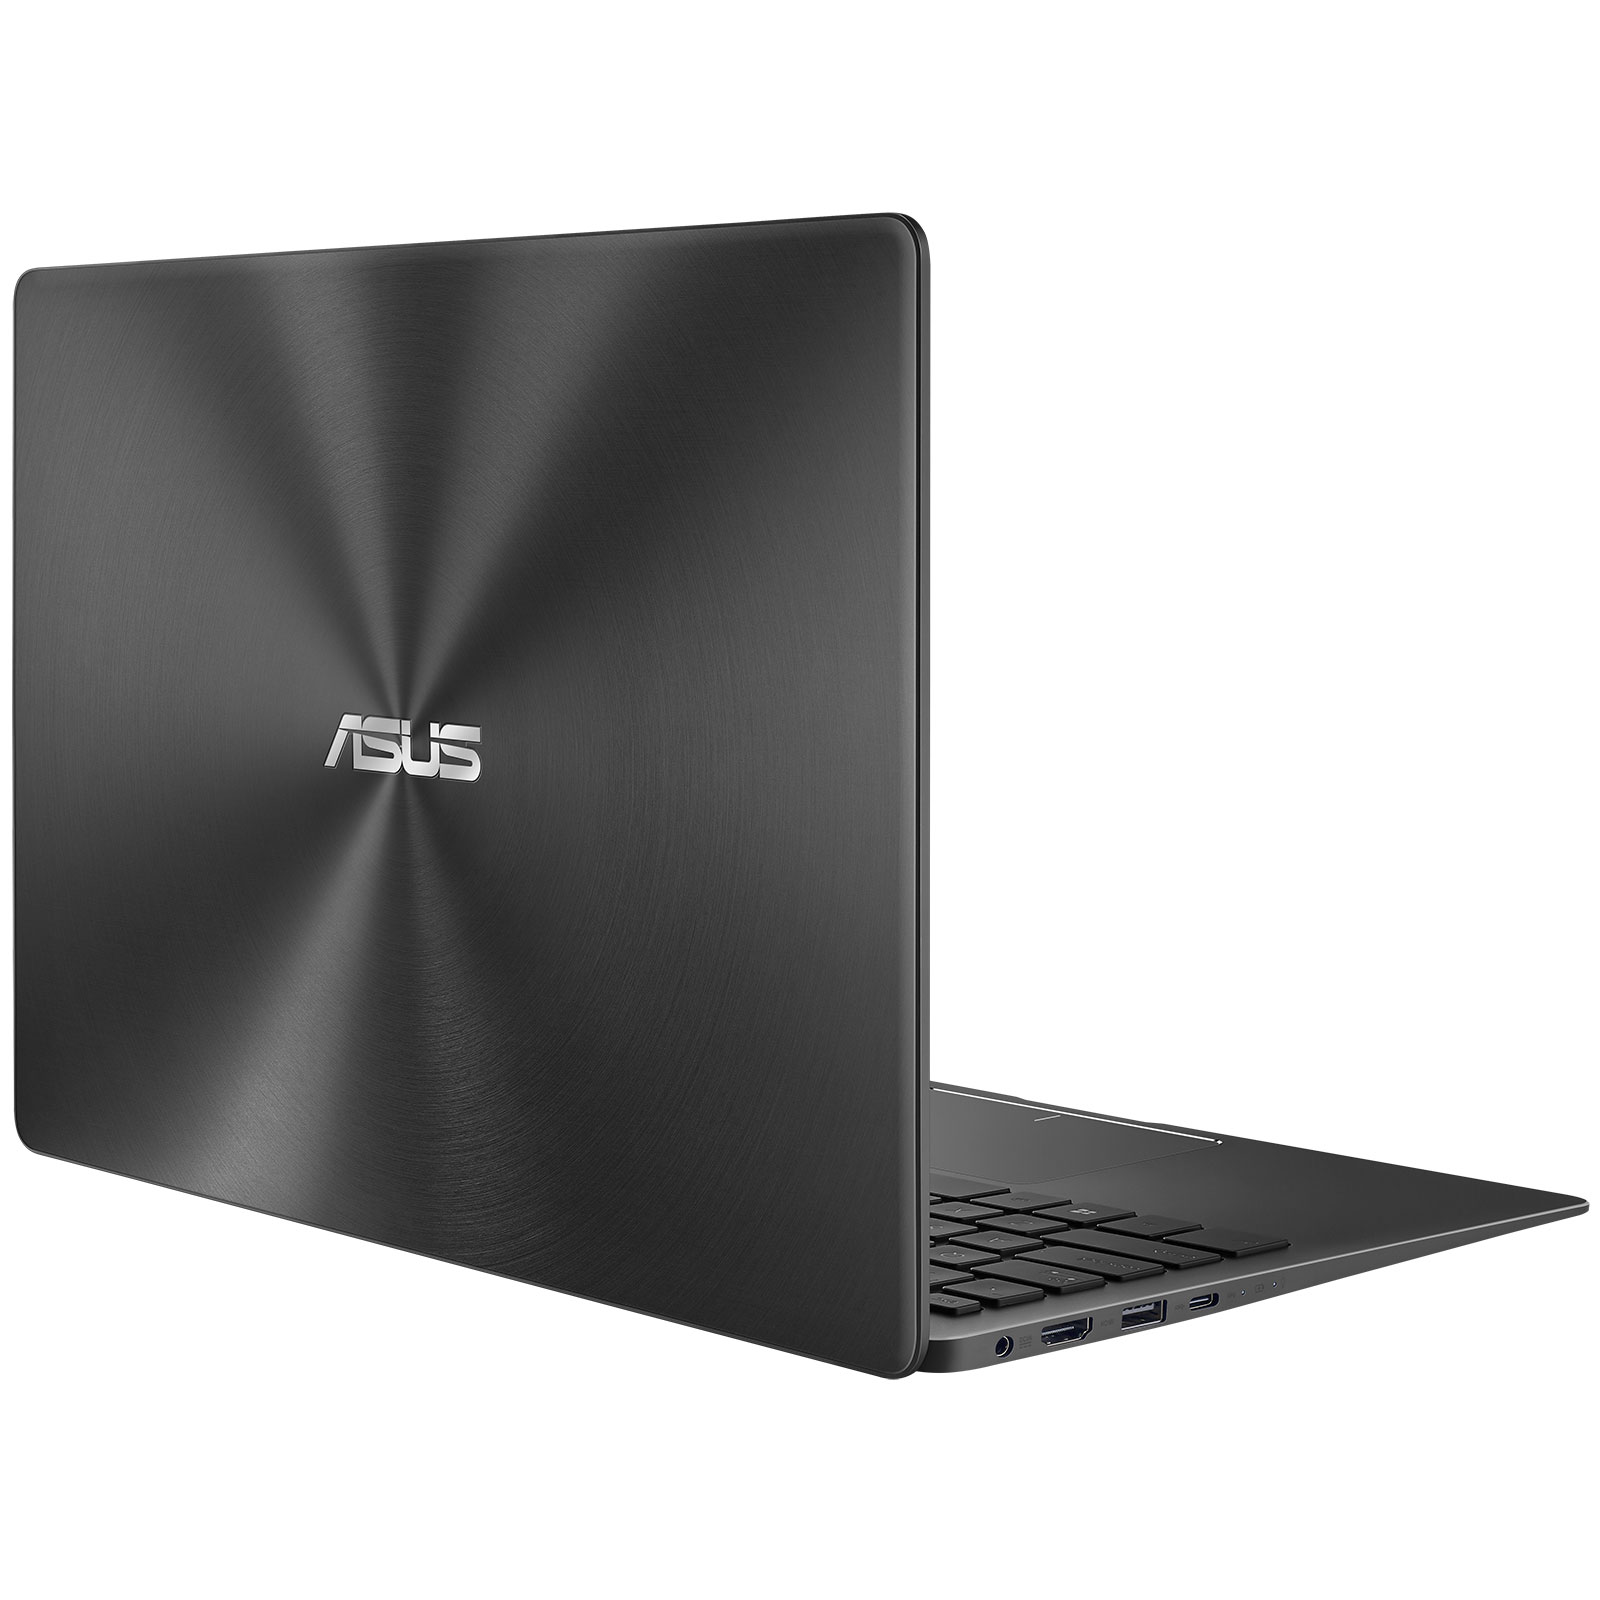 Asus 90NB0GZ2-M01960 - PC portable Asus - Cybertek.fr - 2